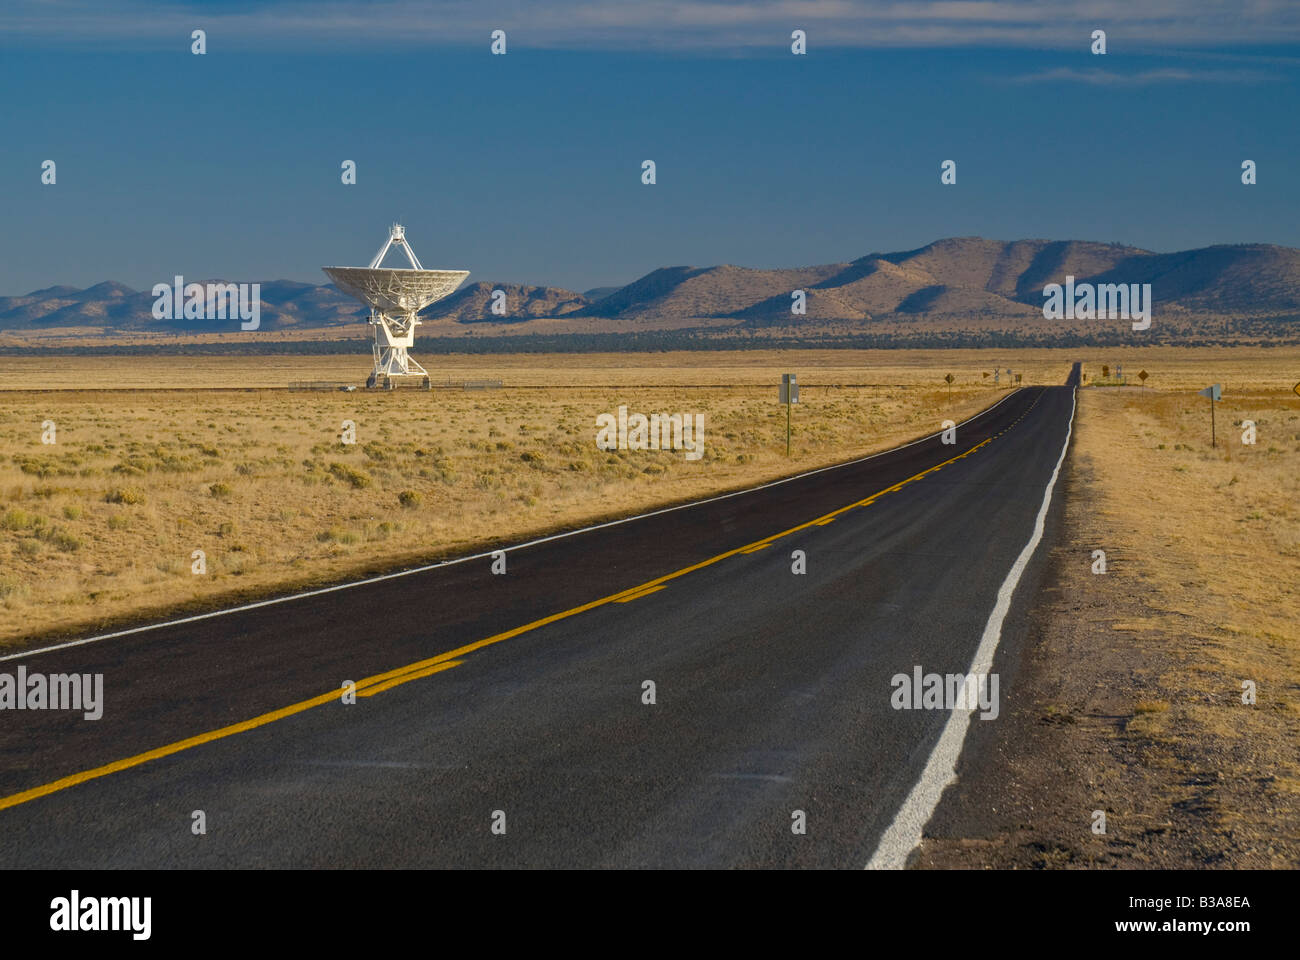 USA, New Mexico, VLA (Very Large Array) of the National Radio Astronomy Observatory - Stock Image